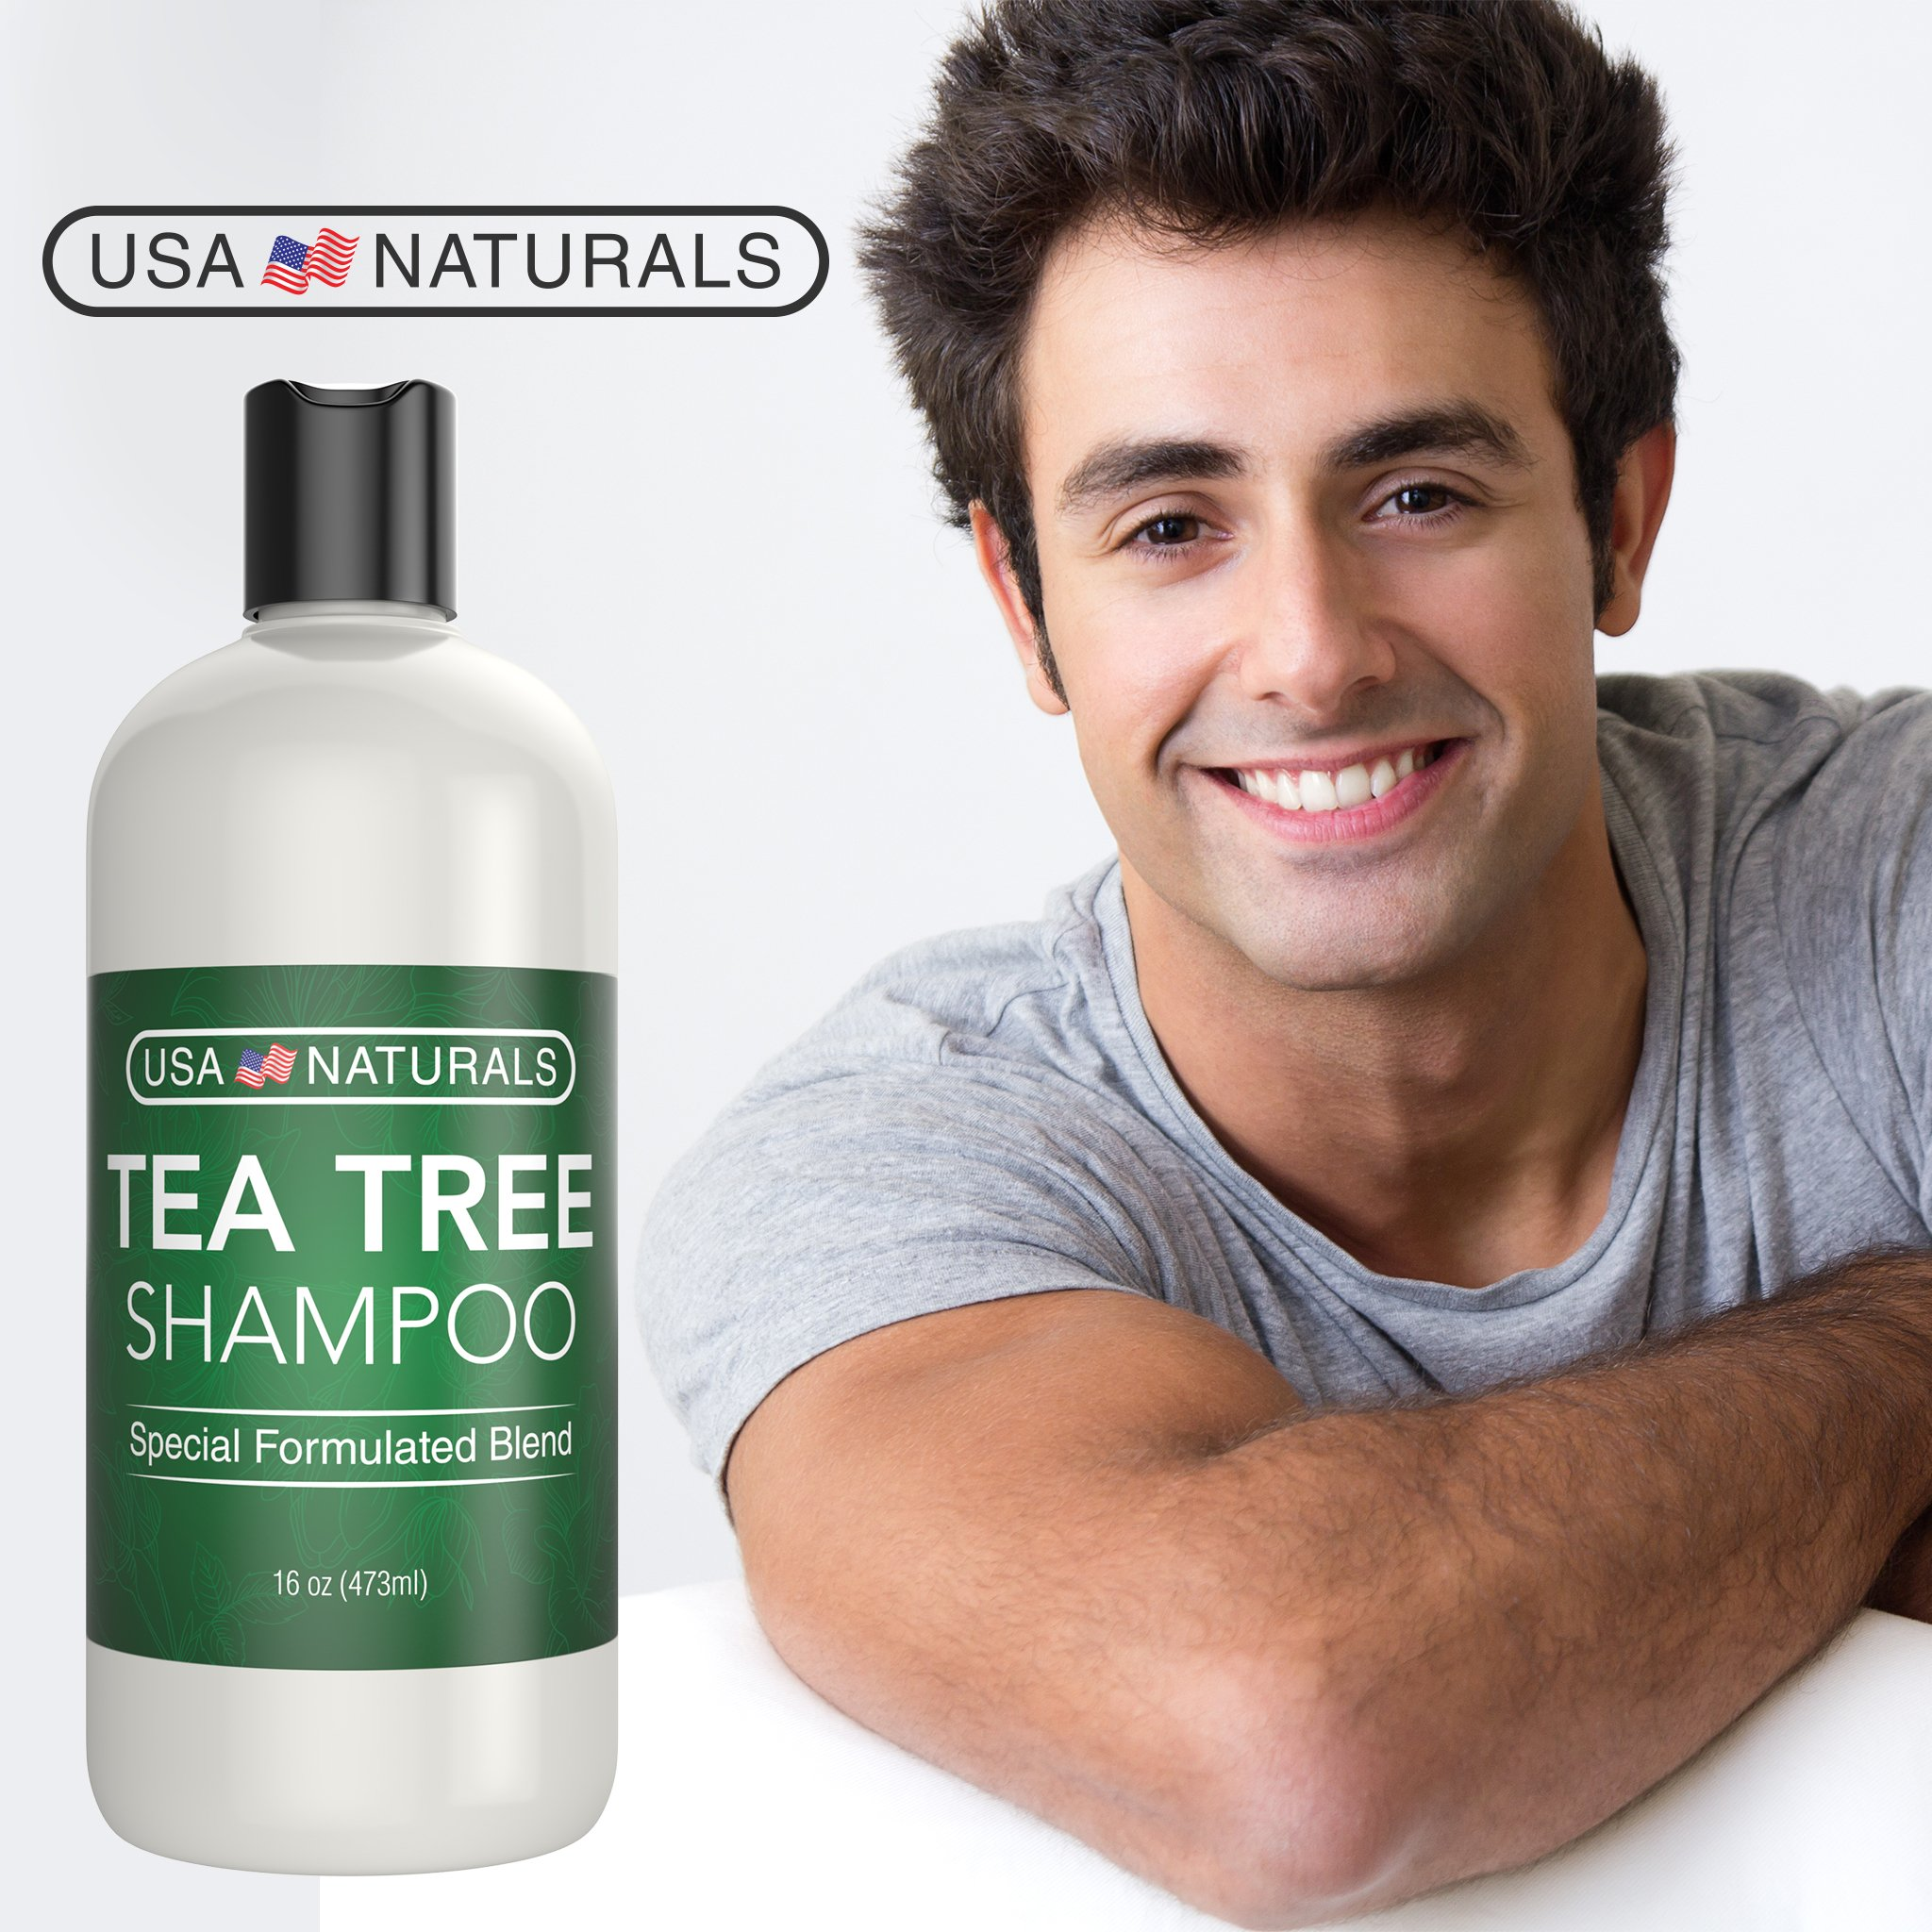 Tea Tree Oil Shampoo Sulfate-Free: Revitalize Hair, Combat Hair Loss and Cleanse Scalp with Naturally-Sourced Ingredients - Pure Tea Tree Oil, Organic Argan Oil, Organic Green Tea (Tea Tree Shampoo) by USA Naturals (Image #6)